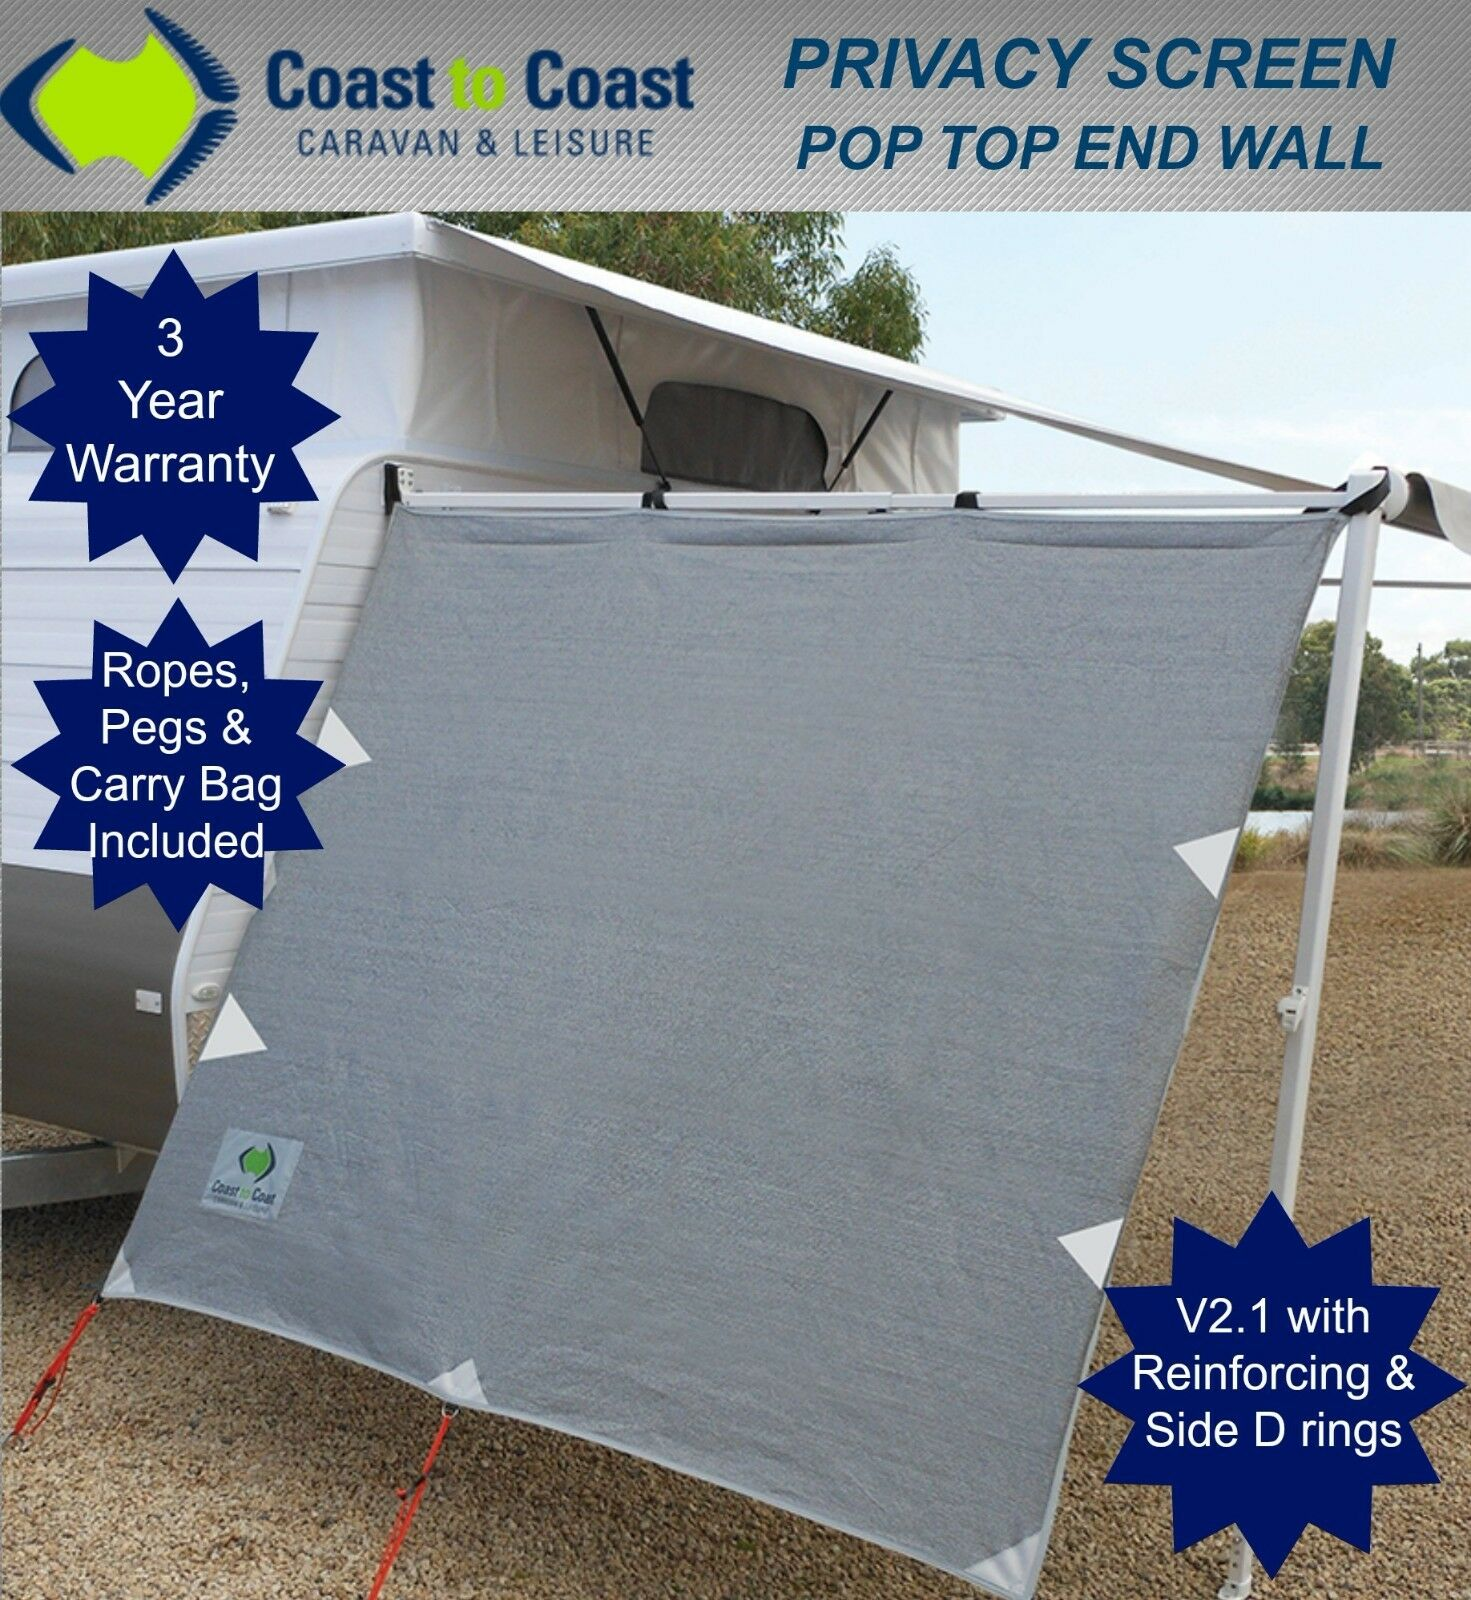 Coast Privacy Sun Screen End Wall For Poptop Suits